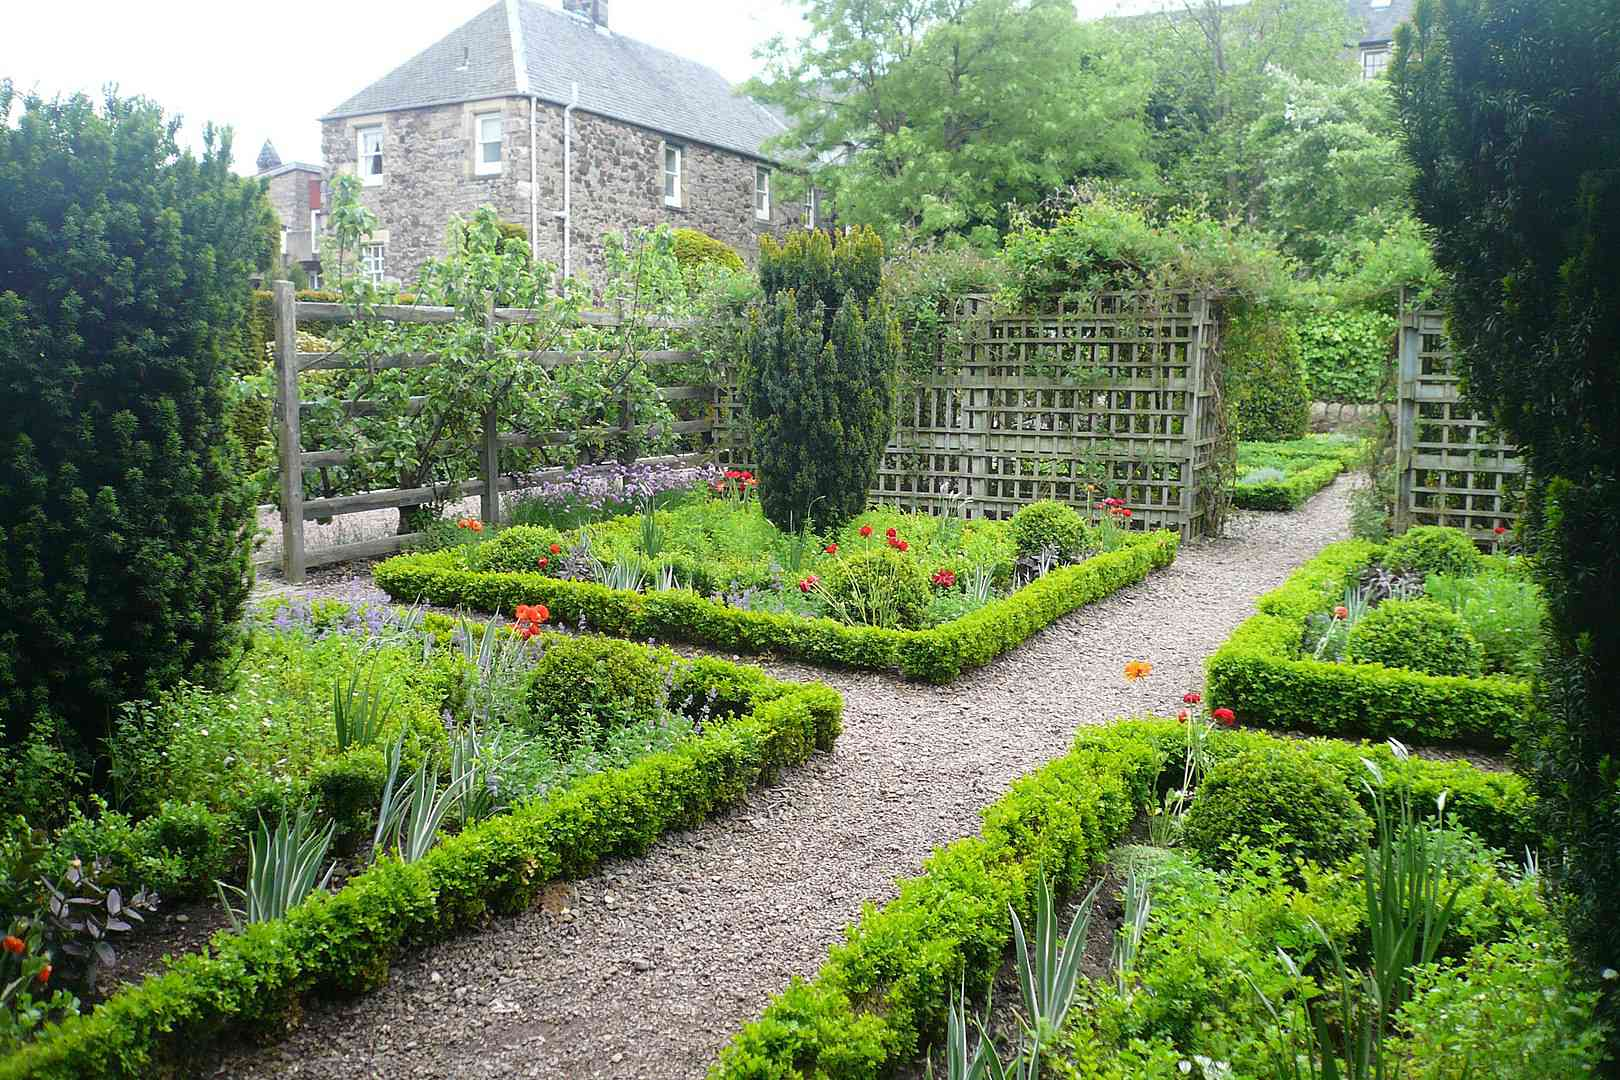 Paths through Dunbar's Close Garden, an orderly garden with small, green ground cover lining plant beds filled with larger green plants and tall shaped bushes with a wood trellis and a small church in the distance